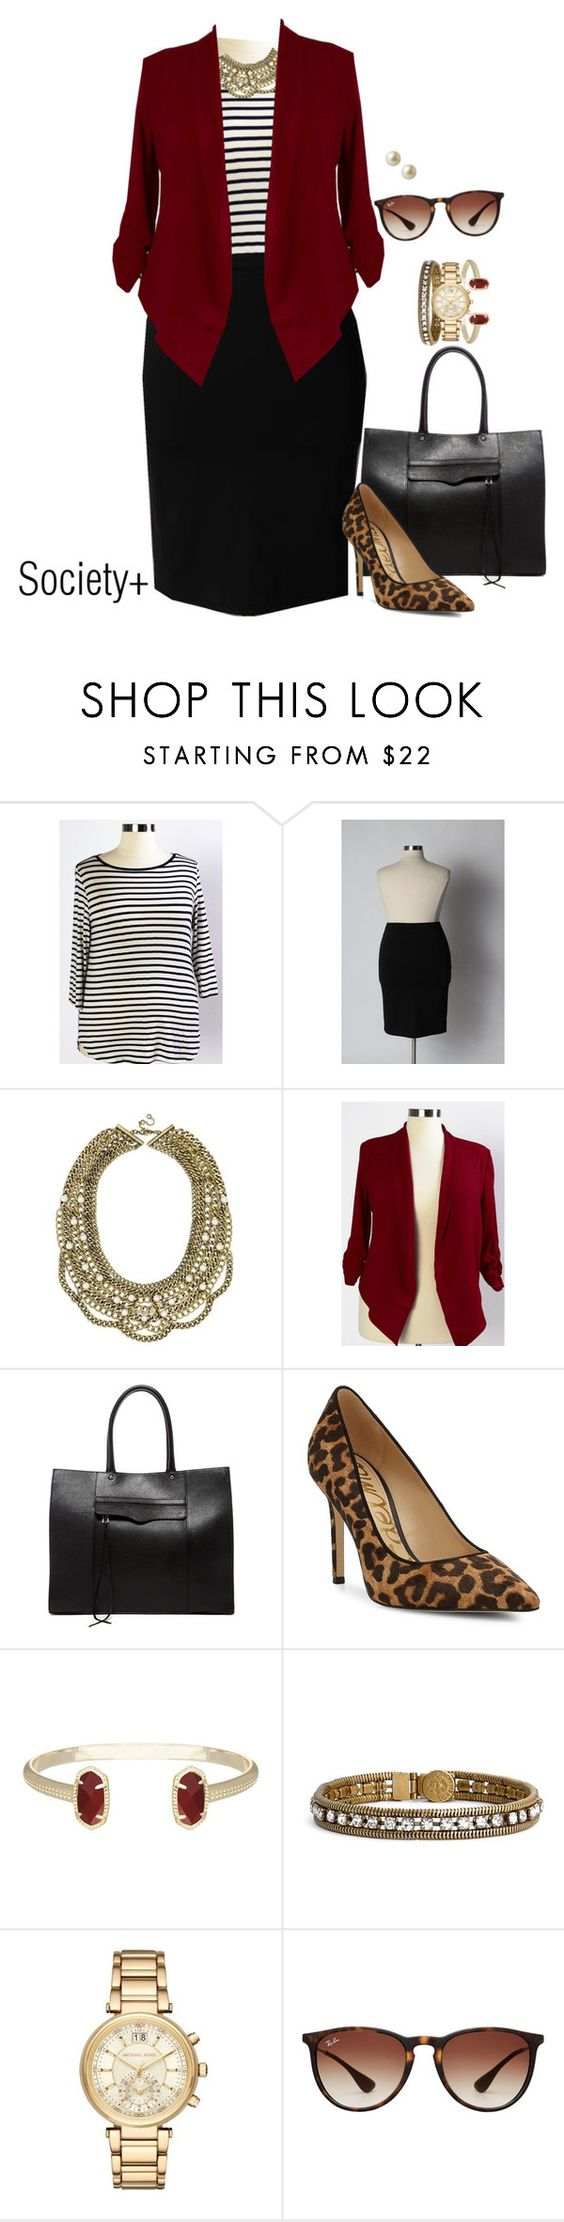 """Plus Size Work Blazer - Society+"" by iamsocietyplus on Polyvore featuring BaubleBar, Rebecca Minkoff, Sam Edelman, Kendra Scott, Loren Hope, Michael Kors, Ray-Ban, Carolee, WorkWear and plussize"